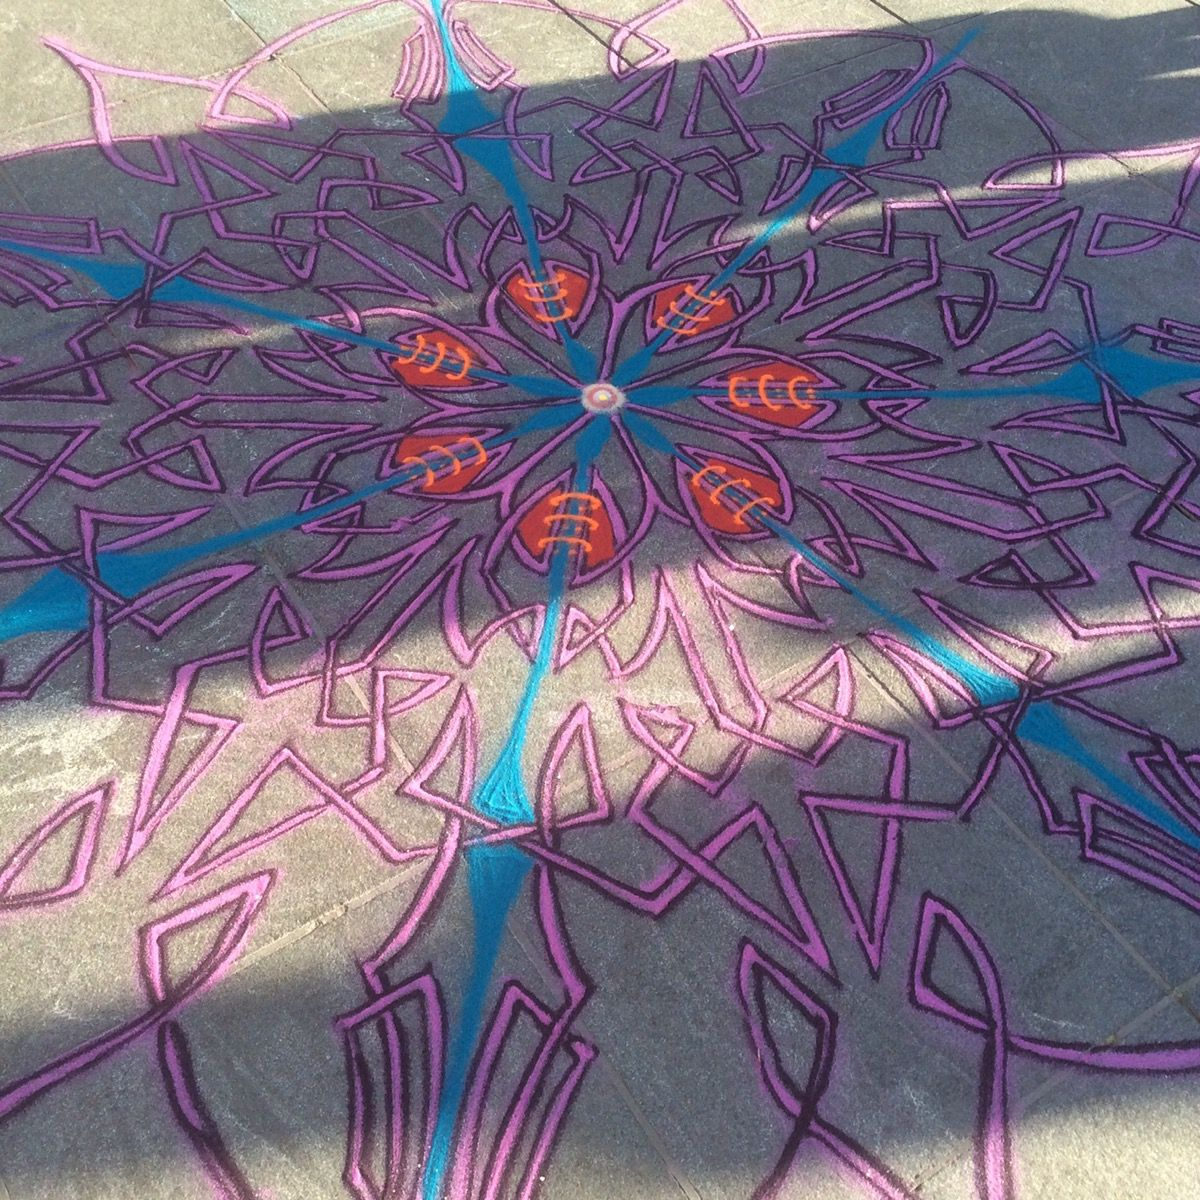 Sand Painting November 12th 2016  Subscribe to exclusive content on Patreon http://bitly.com/tipsbucket Leave a tip https://cash.me/$joemangrum To order T-shirts and more on Etsy: http://bit.ly/joemangrum  Follow me on Facebook http://www.facebook.com/joe.mangrum.art When sharing please include my links Ⓒ 1994-2016 Joe Mangrum http://www.joemangrum.com #sandart #sandpainting #NYC @joemangrum #colorful #art #streetart #art #streetlife